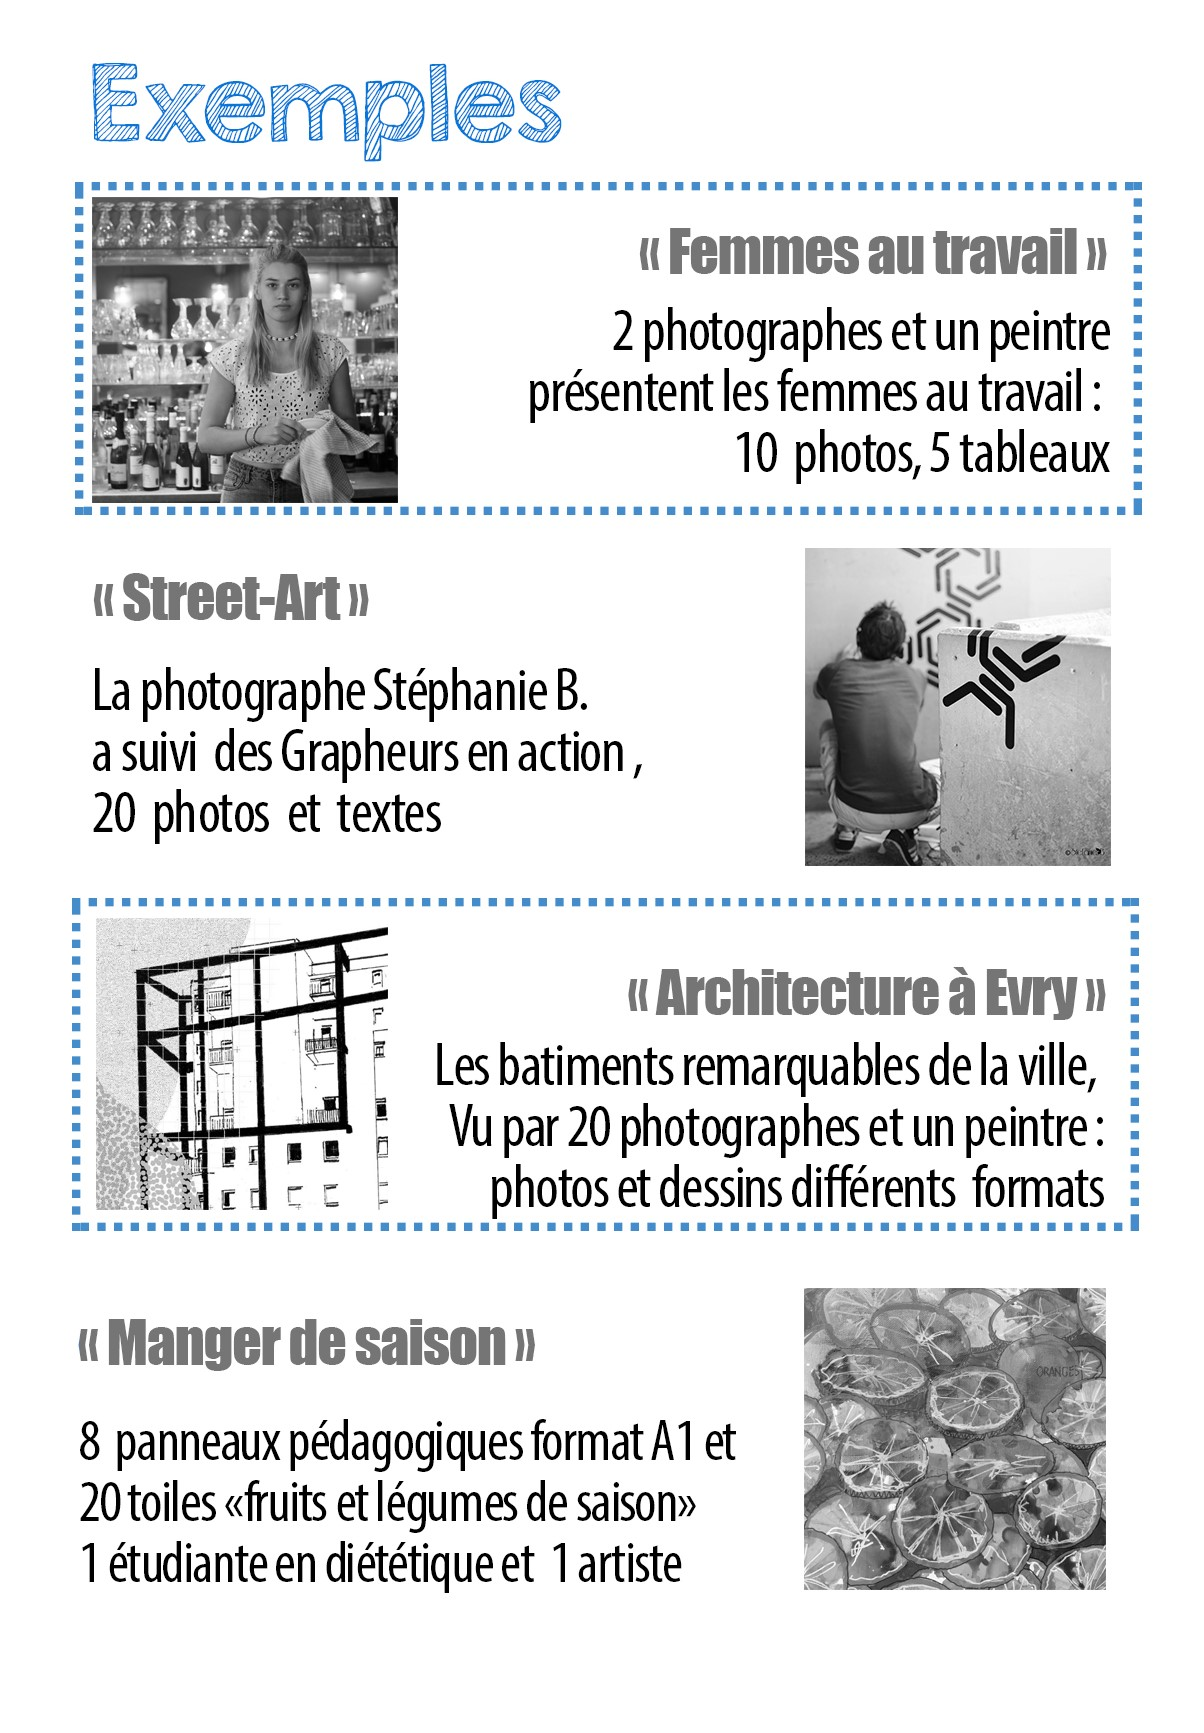 exemples-Expositions-PREFIGURATIONS-V2-recto